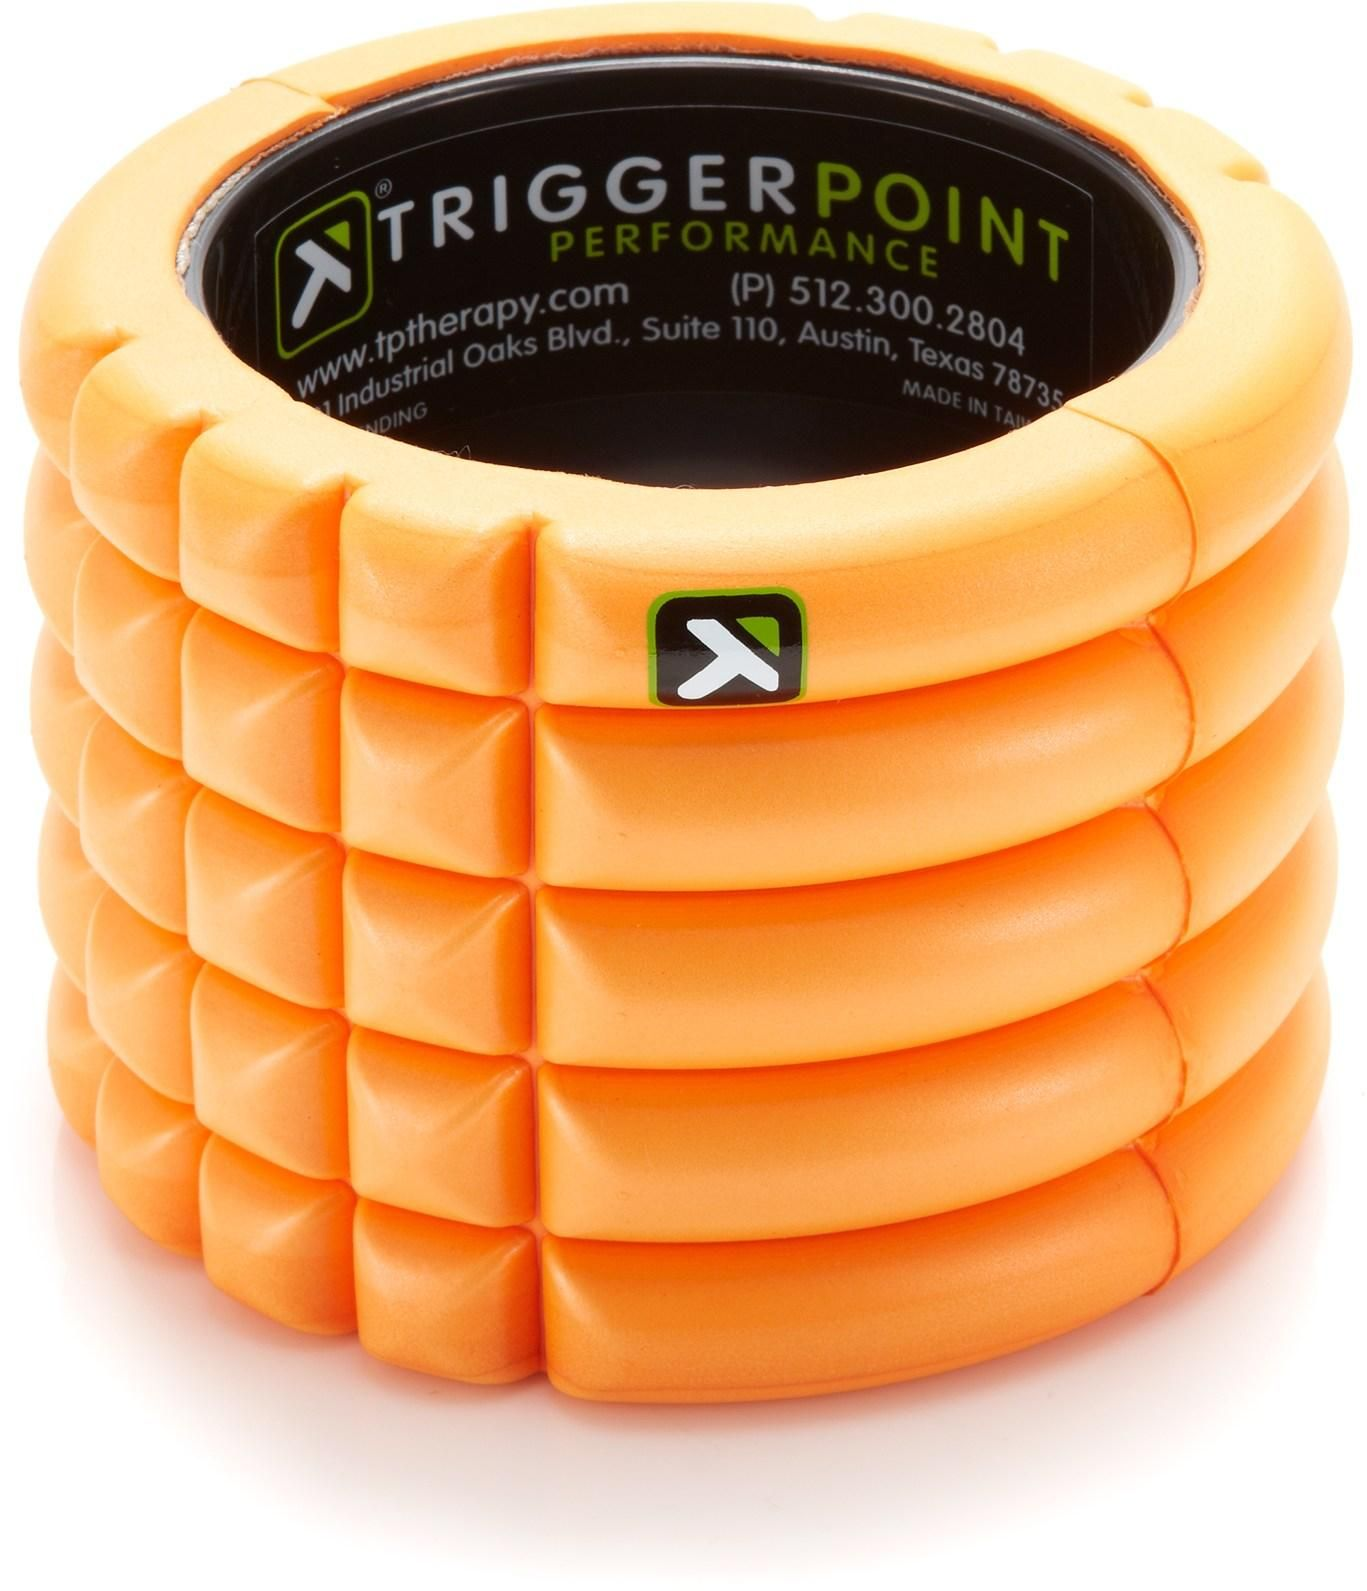 15++ Trigger point performance roller trends